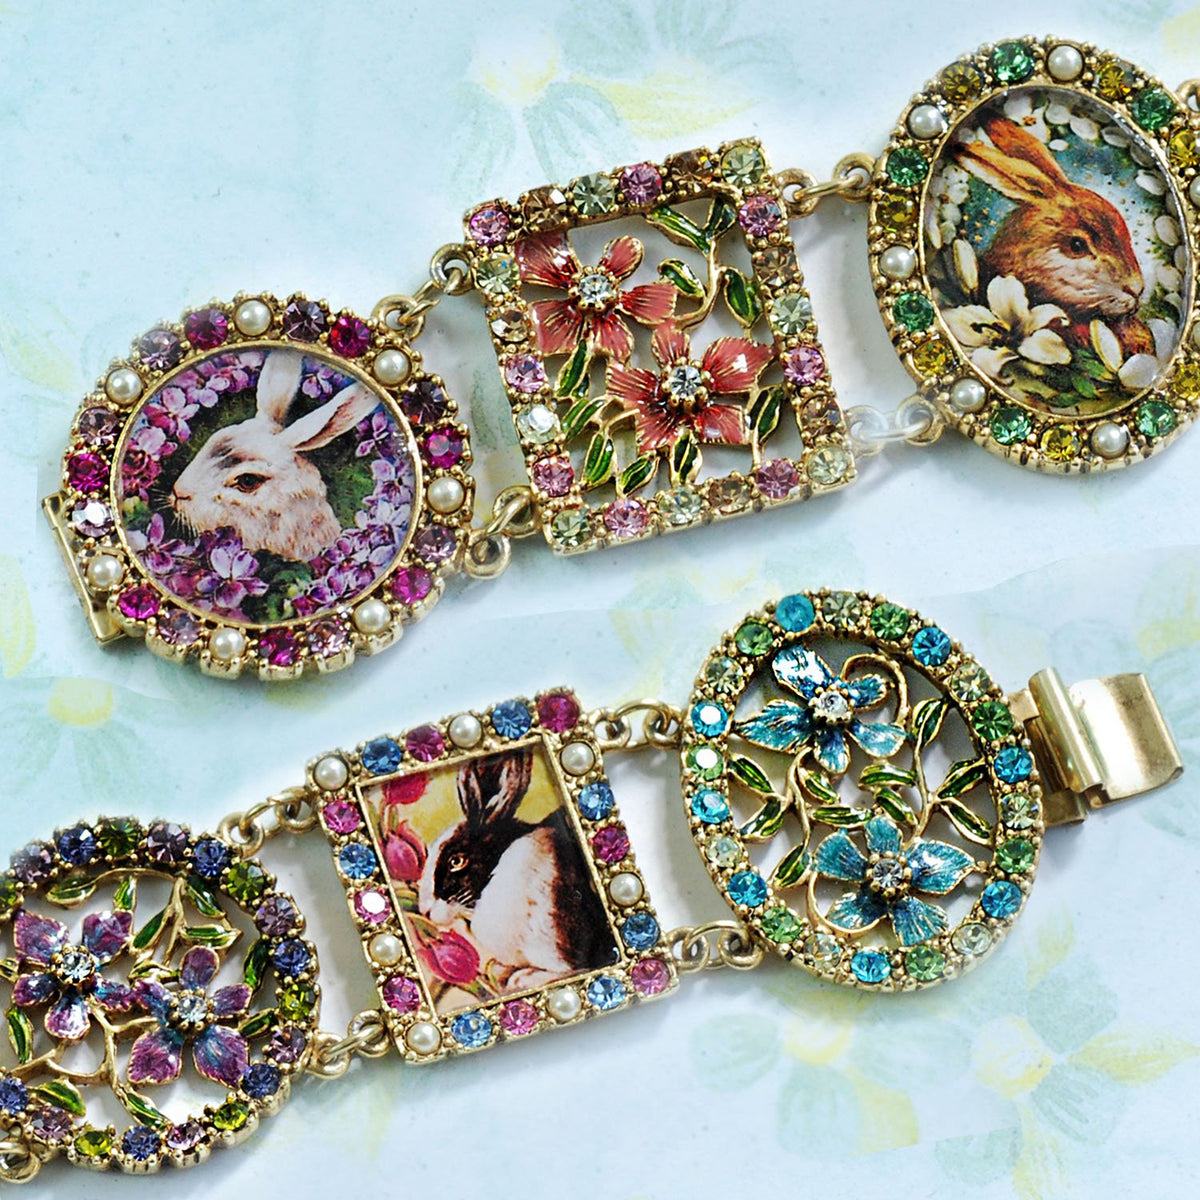 Garden of Bunnies Bracelet BR536 - Sweet Romance Wholesale